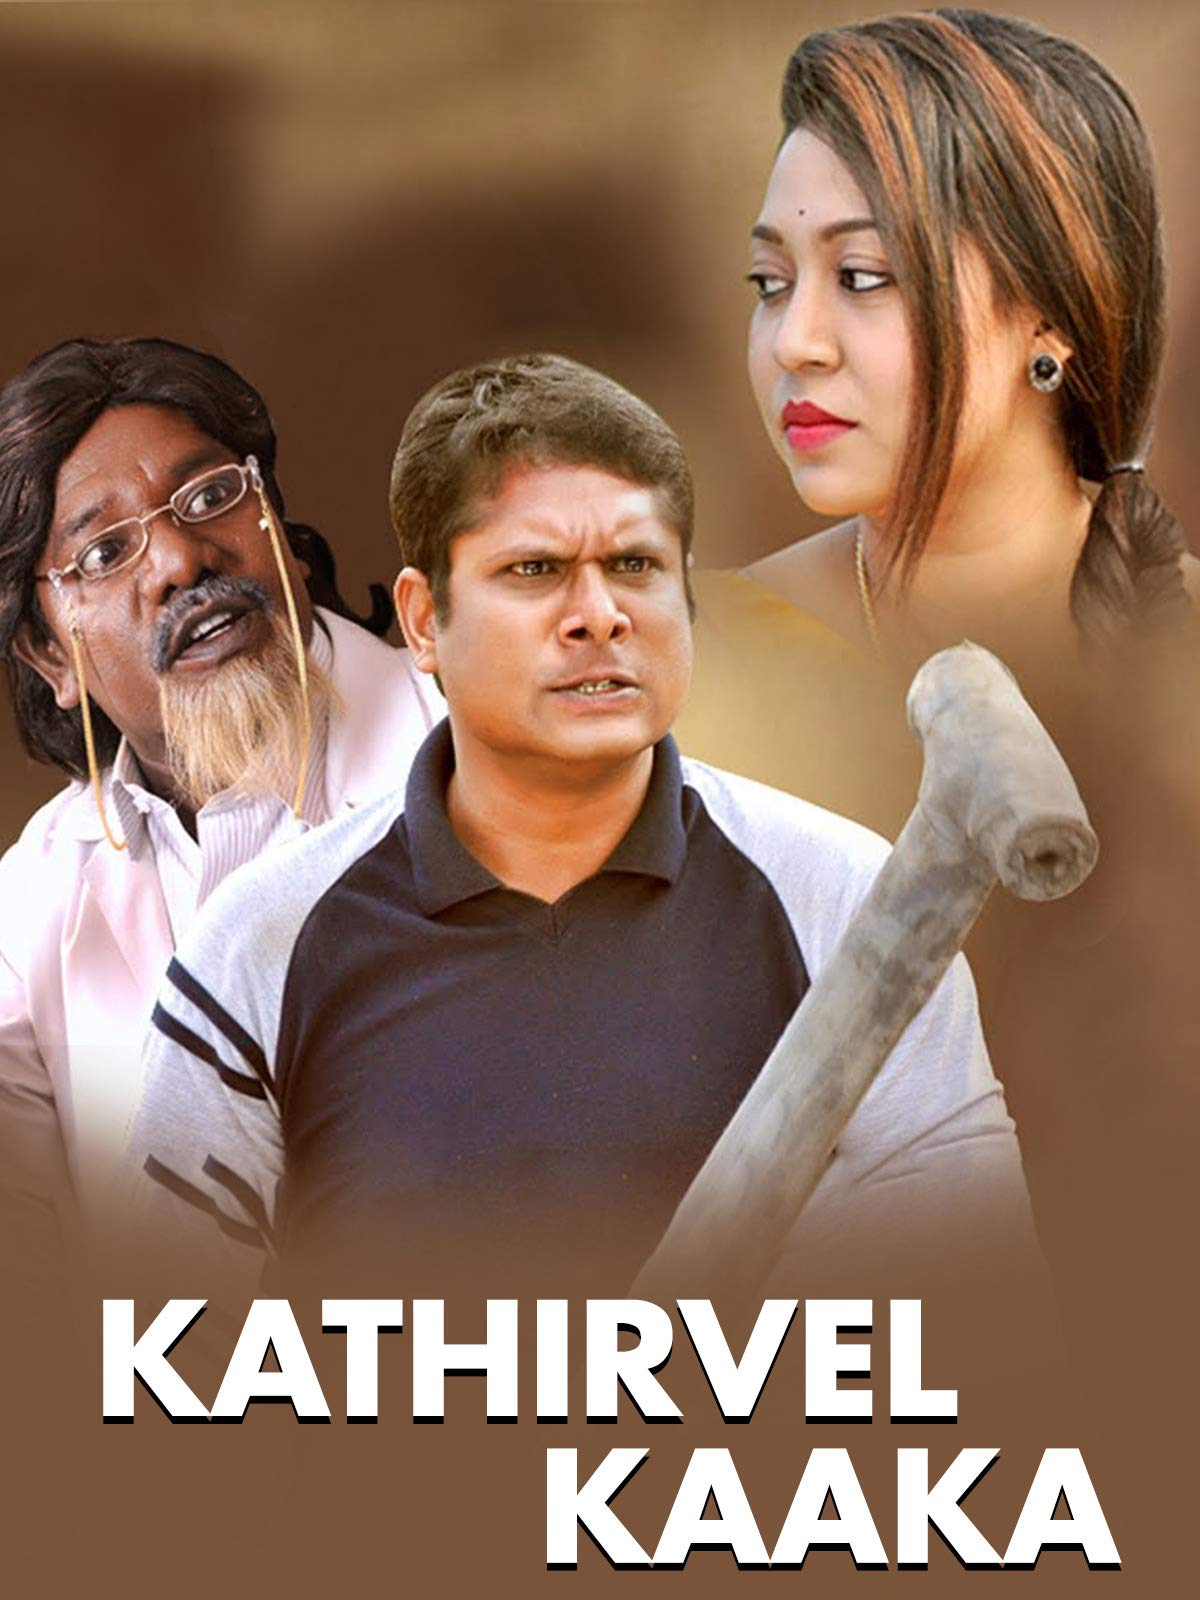 Veera The Power (Kathirvel Kakka) 2019 Hindi Dubbed 720p HDRip 1GB Free Download